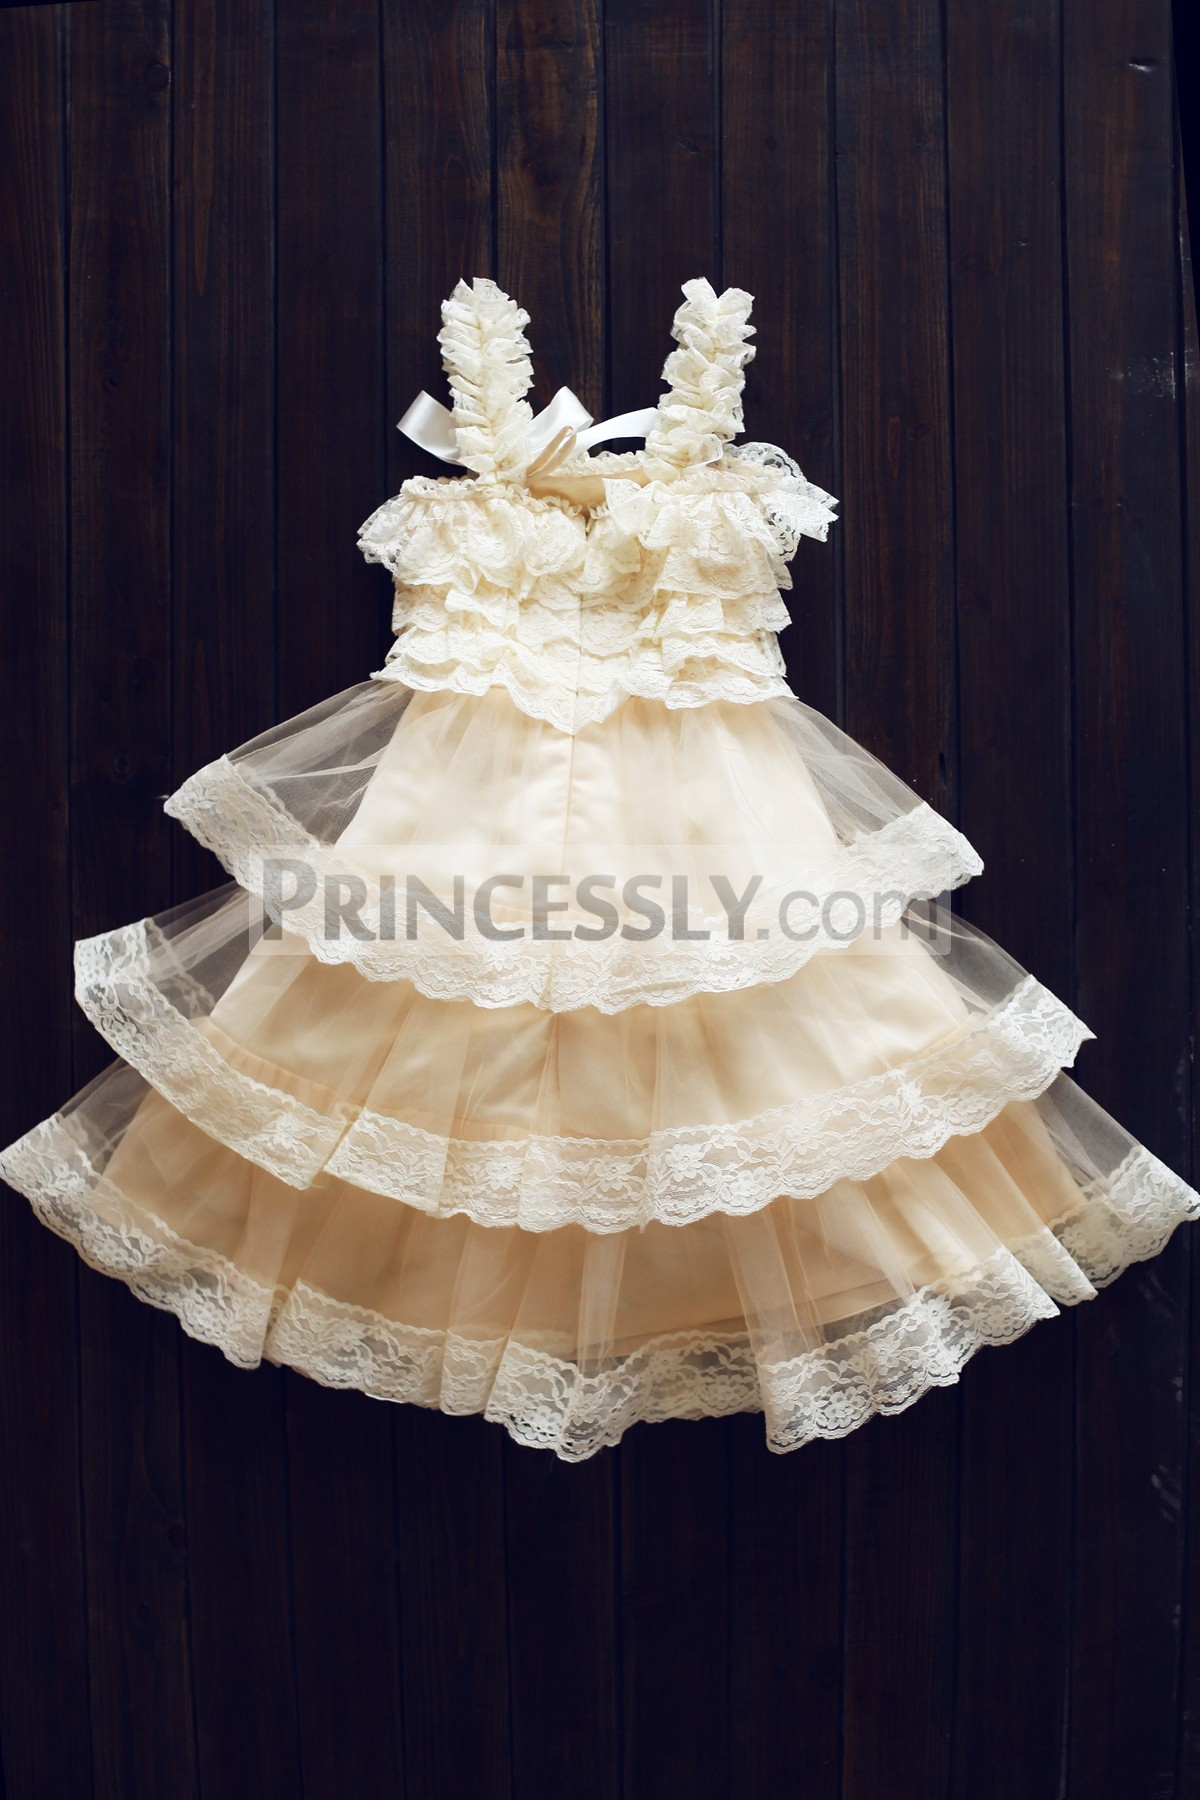 Fully lined lace tulle wedding flower gilr dress